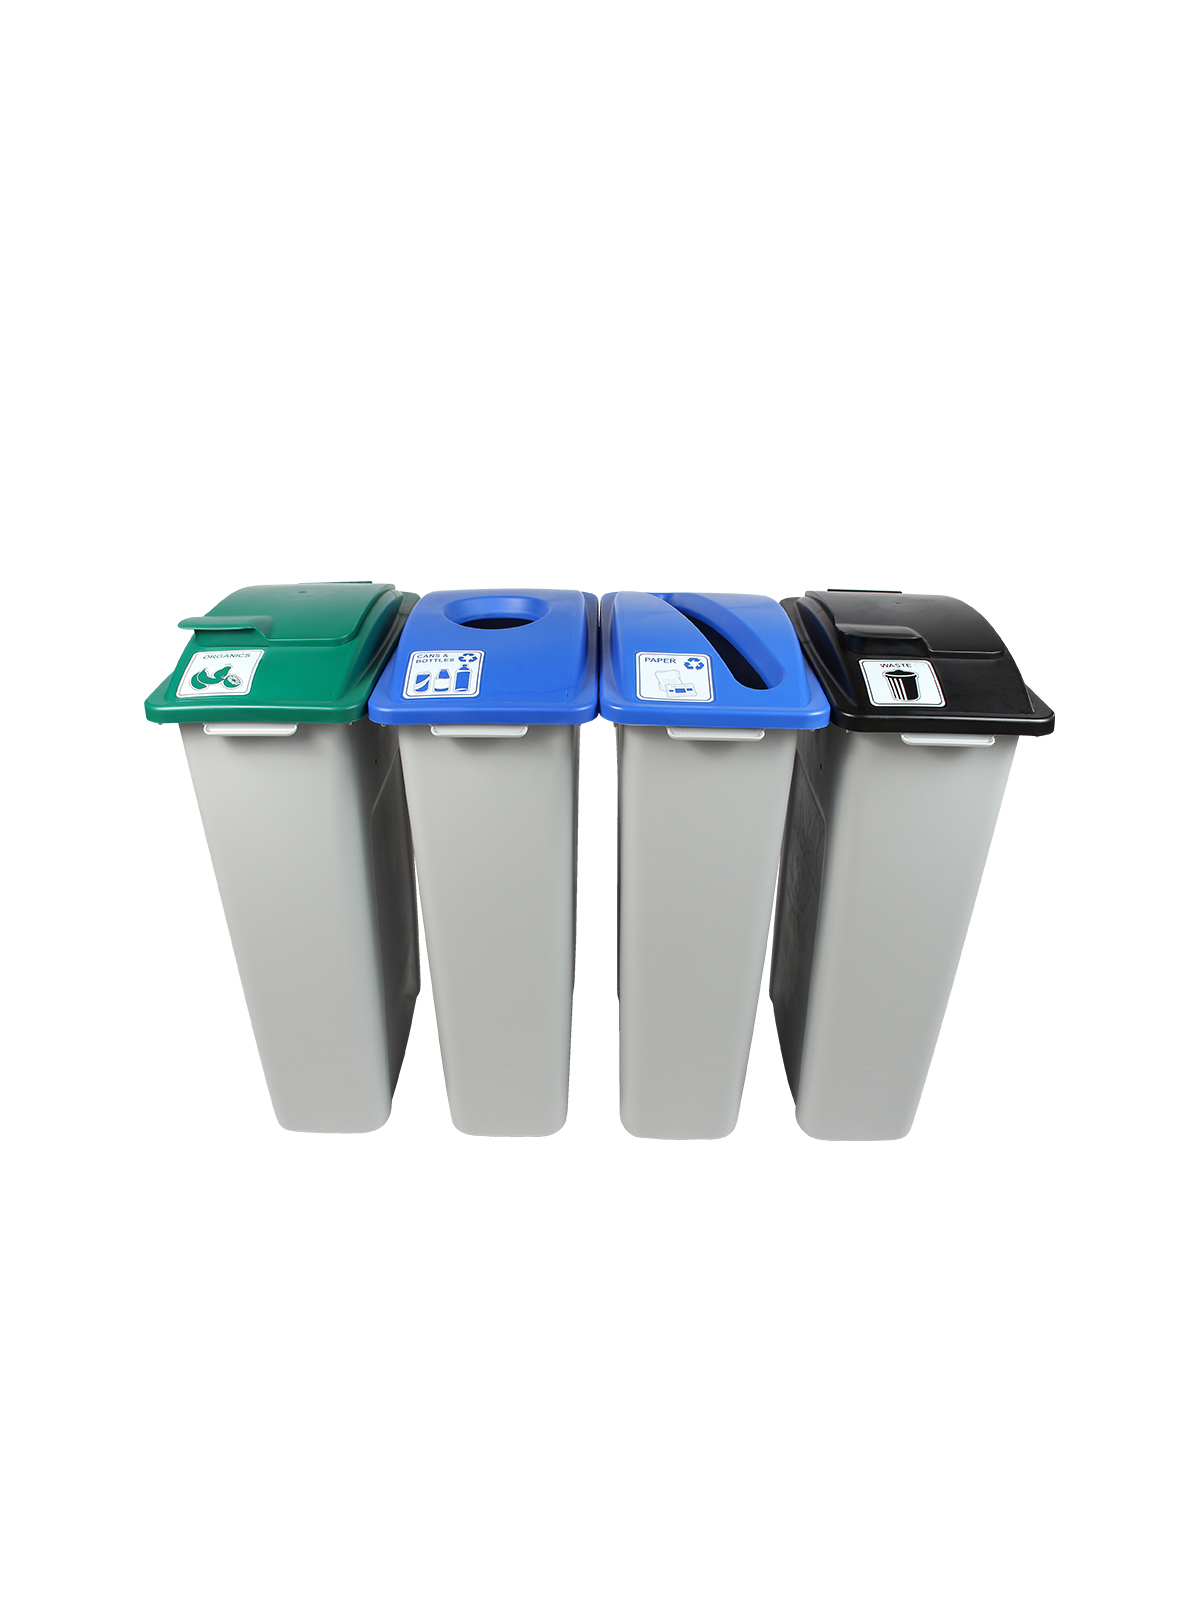 WASTE WATCHER - Quad - Cans & Bottles-Paper-Compost-Waste - Circle-Slot-Solid Lift-Solid Lift - Grey-Blue-Blue-Green-Black